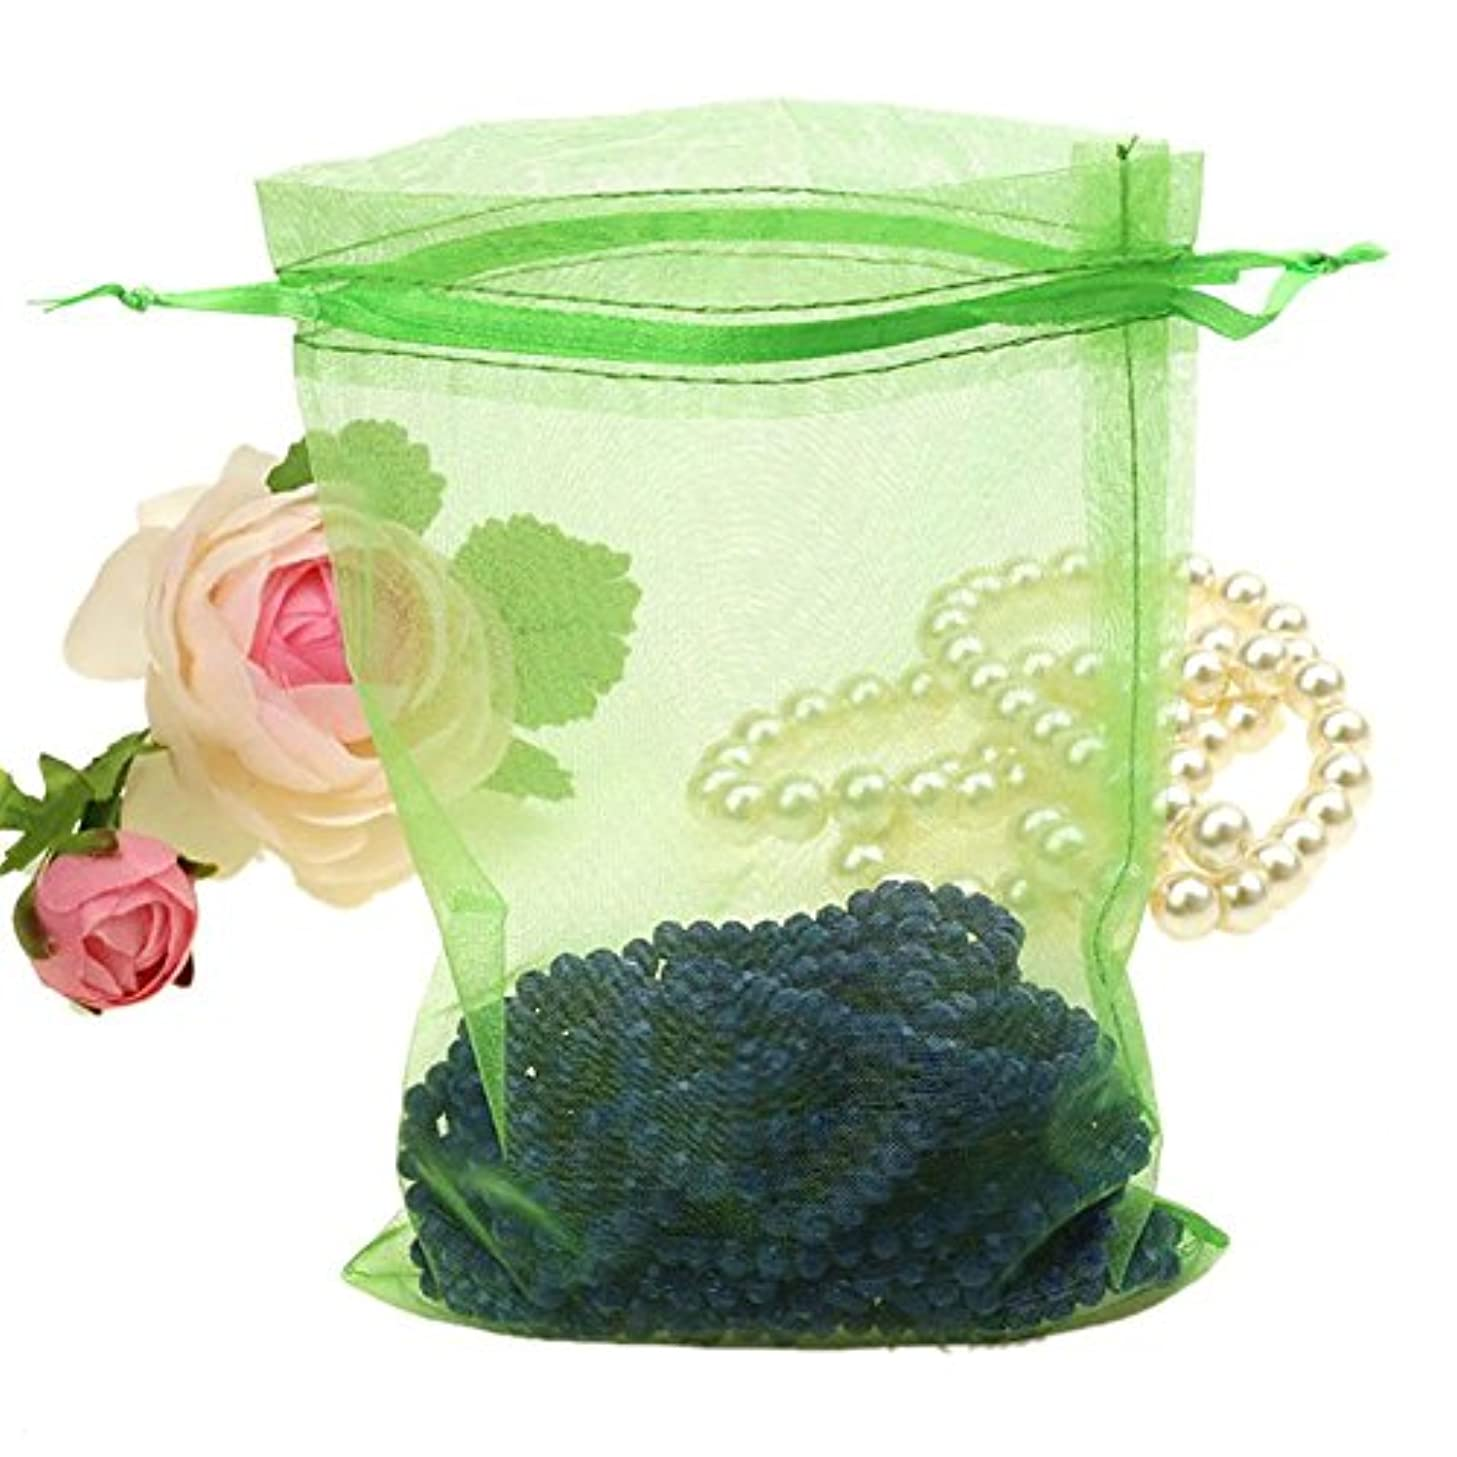 Organza Bags 100pcs 4 x 6 Inch Gift Bags Organza Drawstring Pouch Jewelry Party Wedding Favor Party Festival Gift Bags Candy Bags (Green)